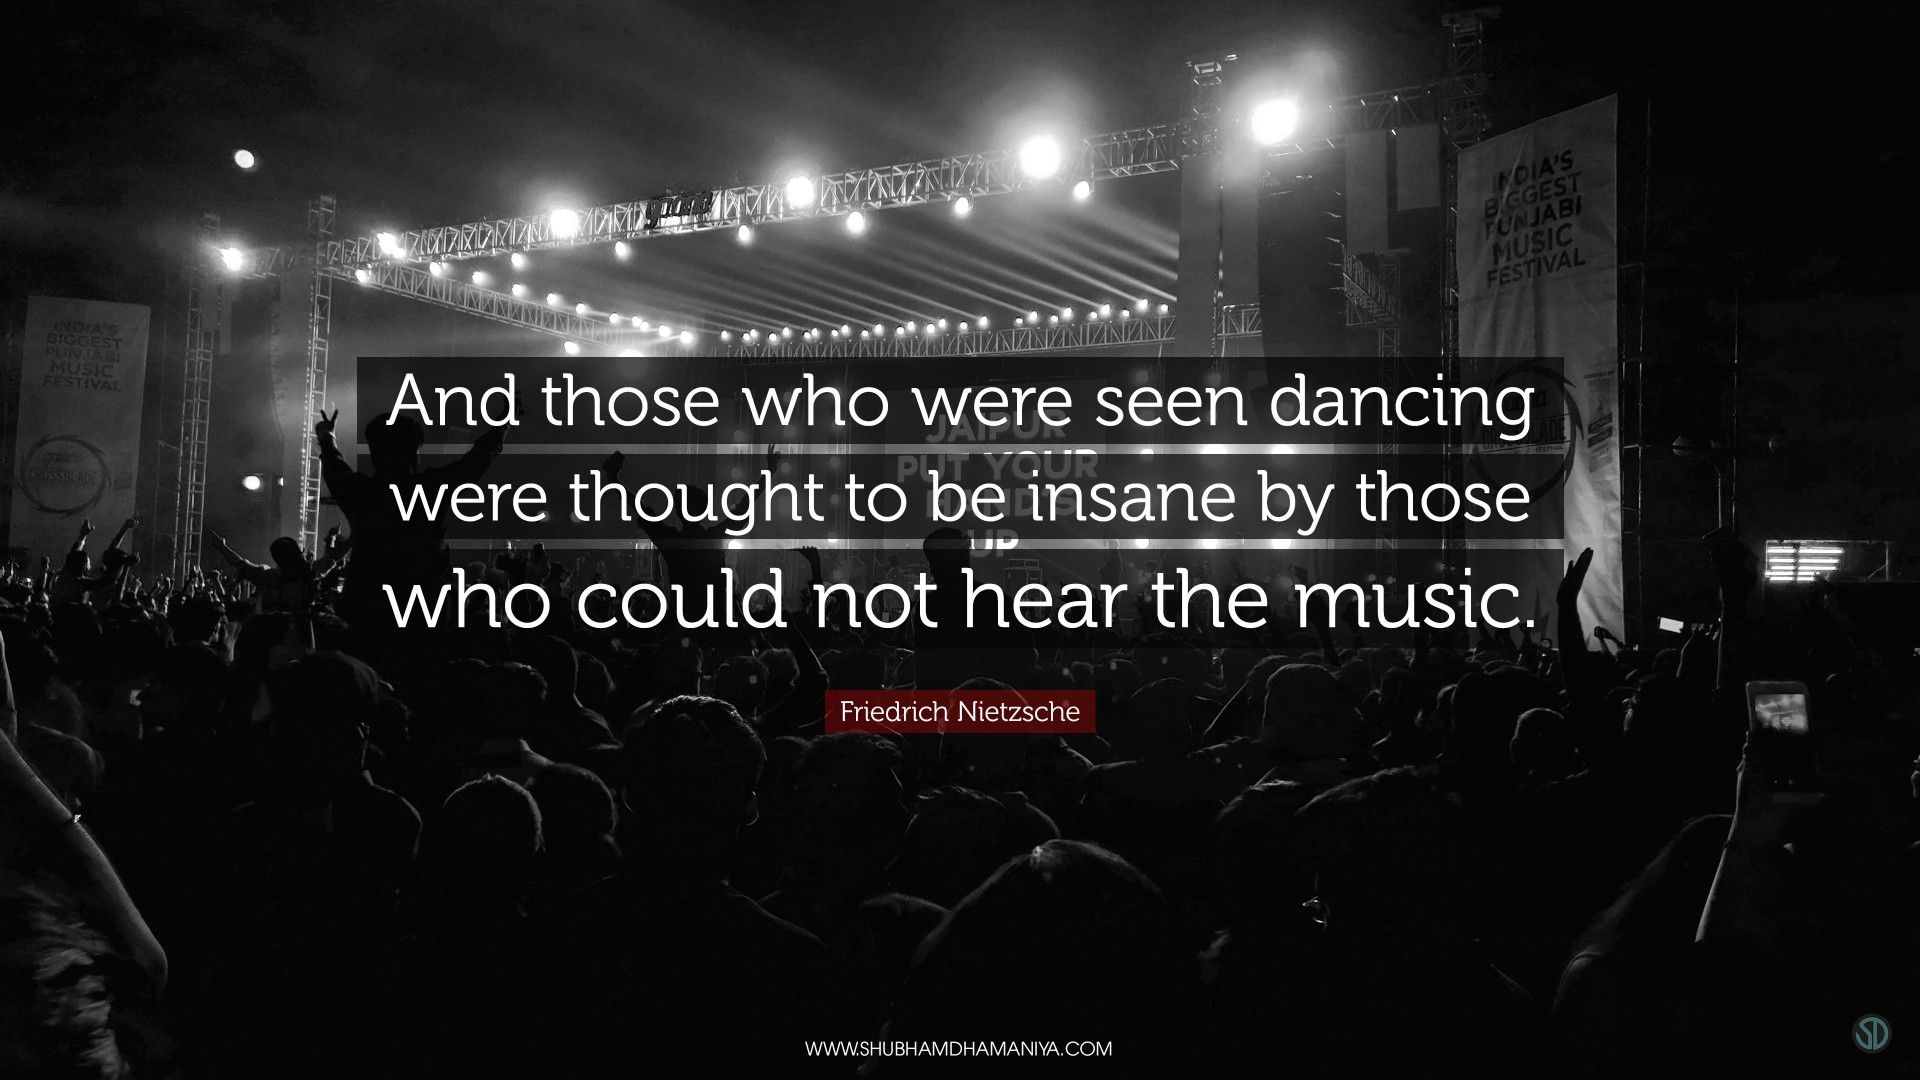 And Those Who Were Seen Dancing Were Thought To Be Insane By Could Not Hear The Music Friedrichnietzsc Thoughts Friedrich Nietzsche Nietzsche